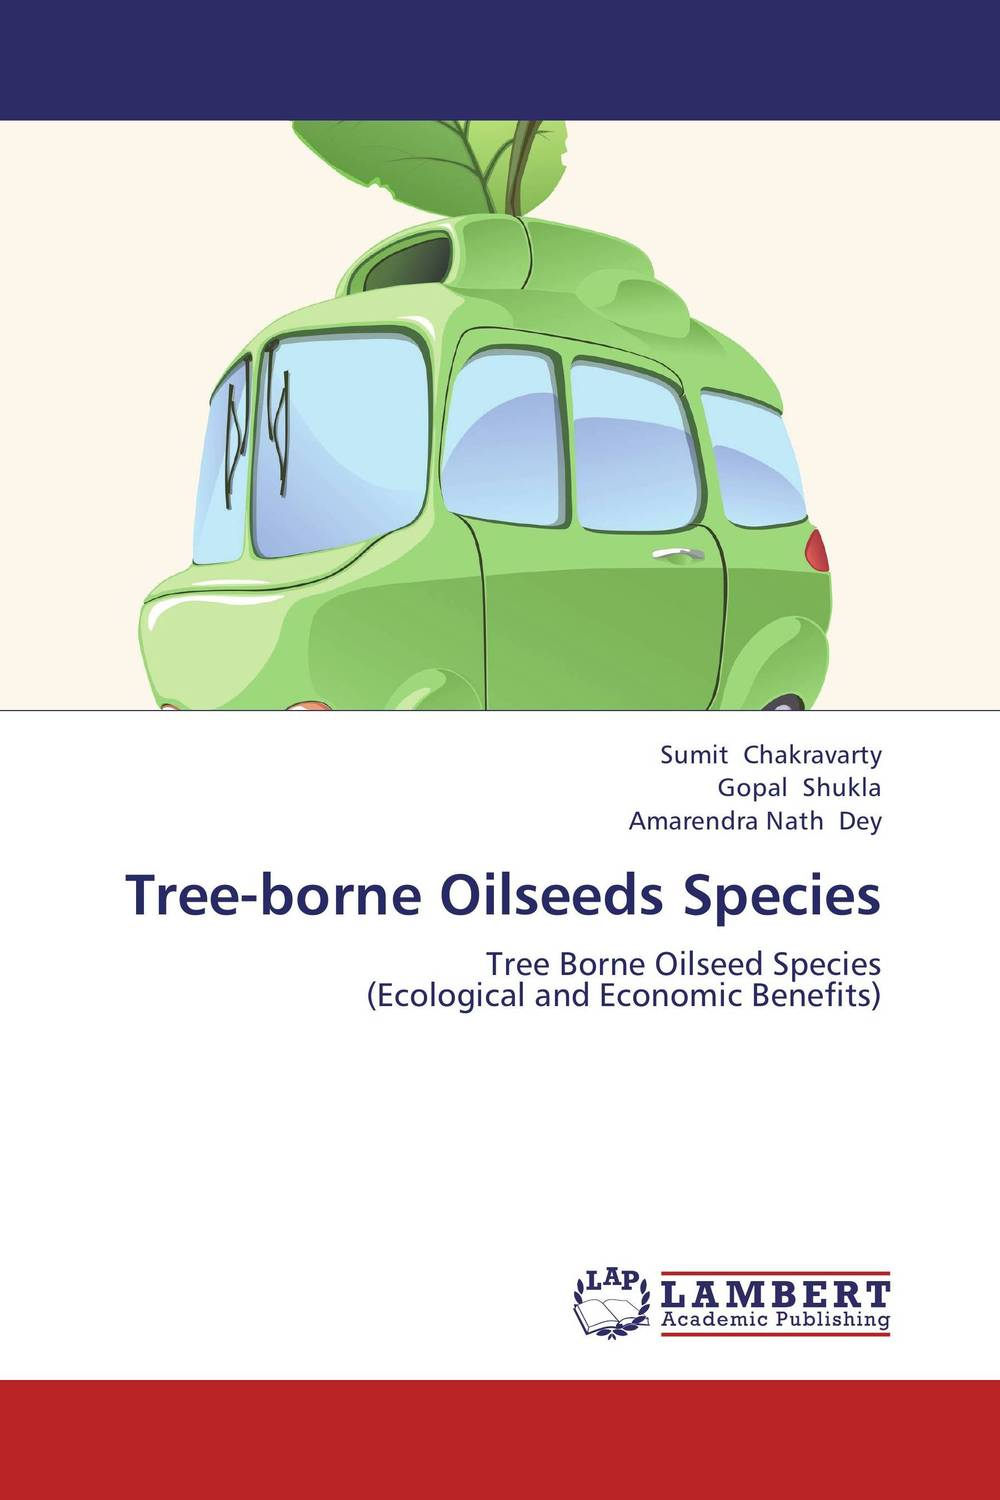 Tree-borne Oilseeds Species sumit chakravarty gopal shukla and amarendra nath dey tree borne oilseeds species